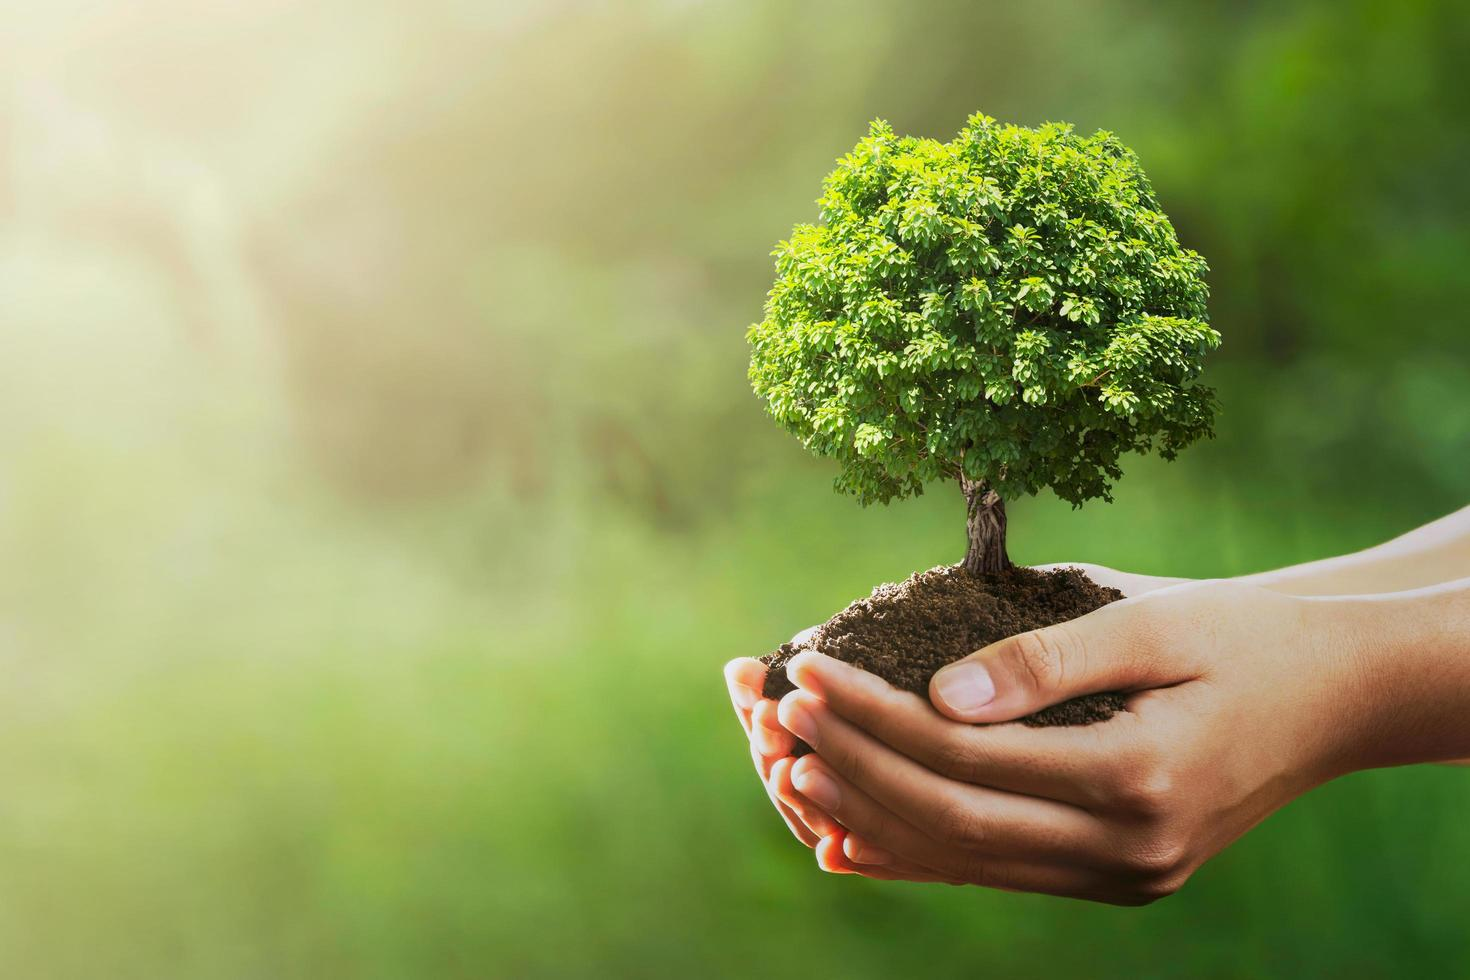 Hands holding tree and dirt photo